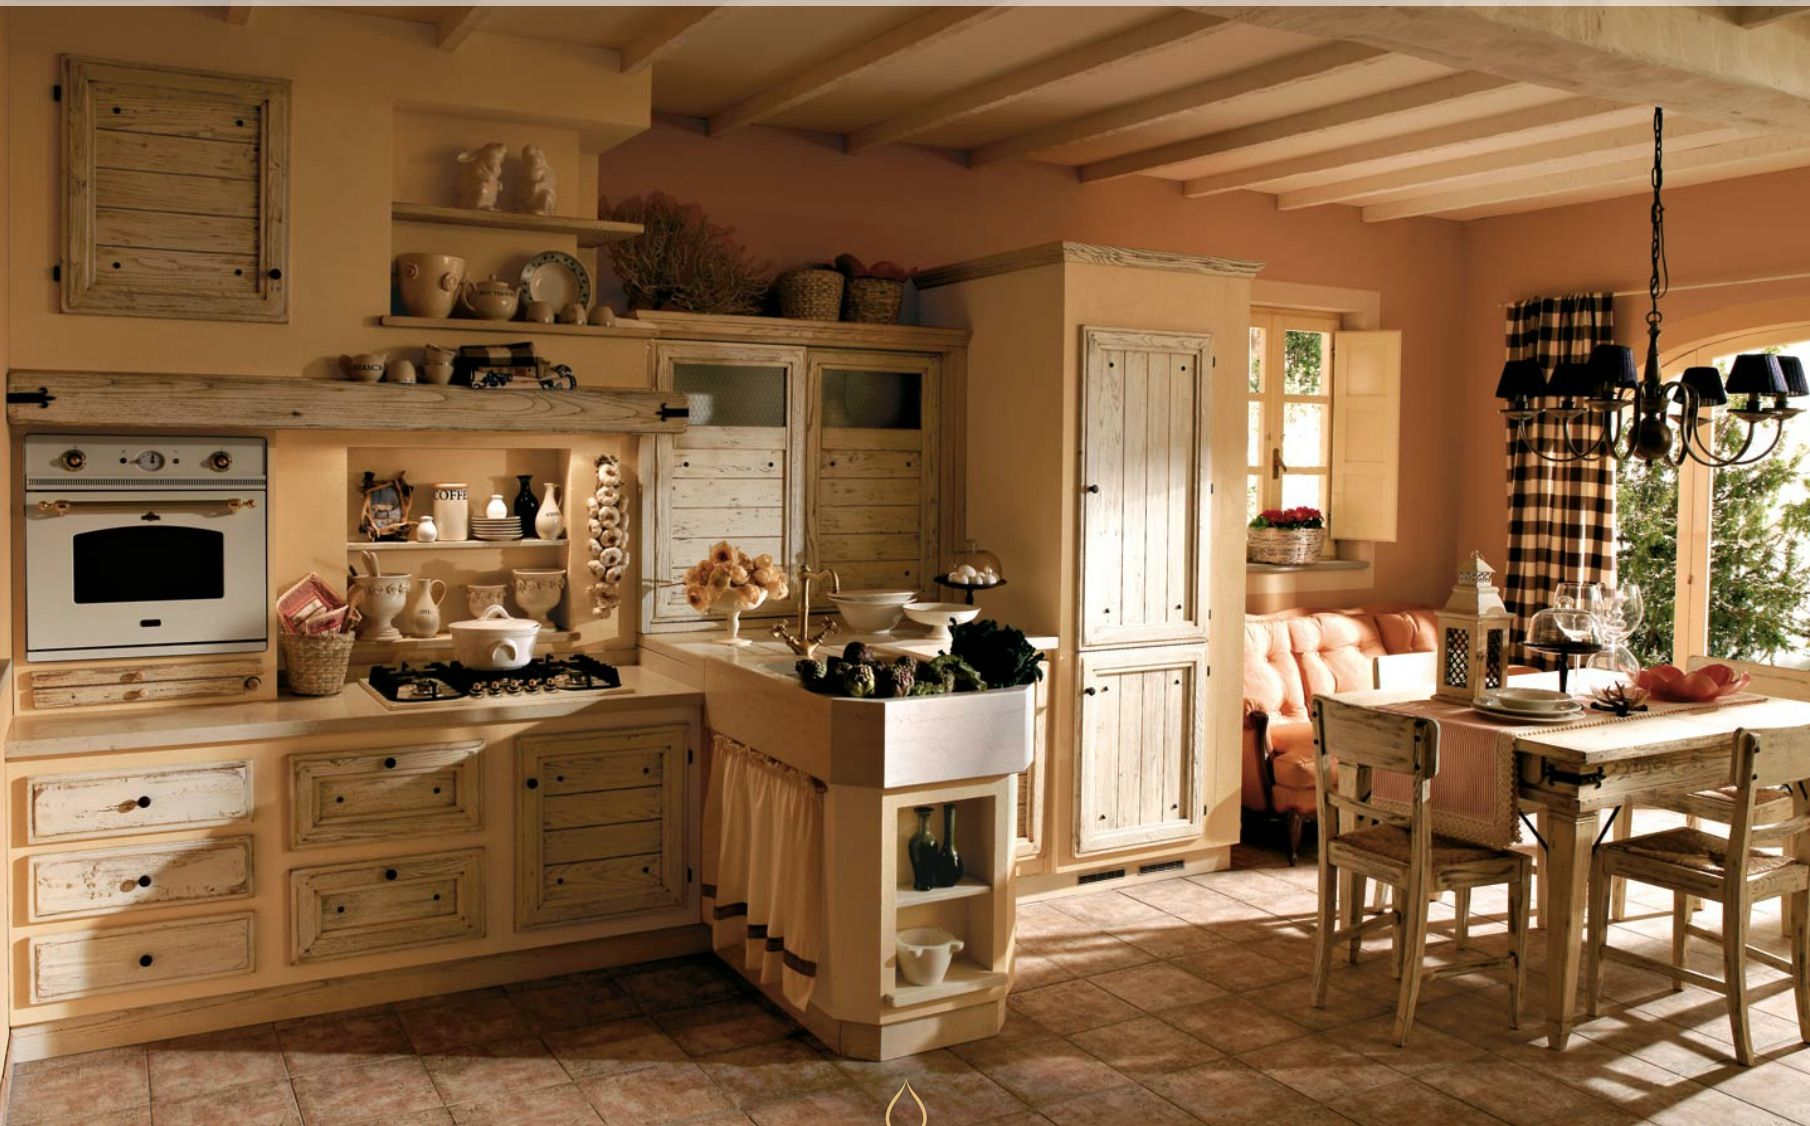 Cucina in muratura | Kitchens | Pinterest | Rustic kitchen and Kitchens